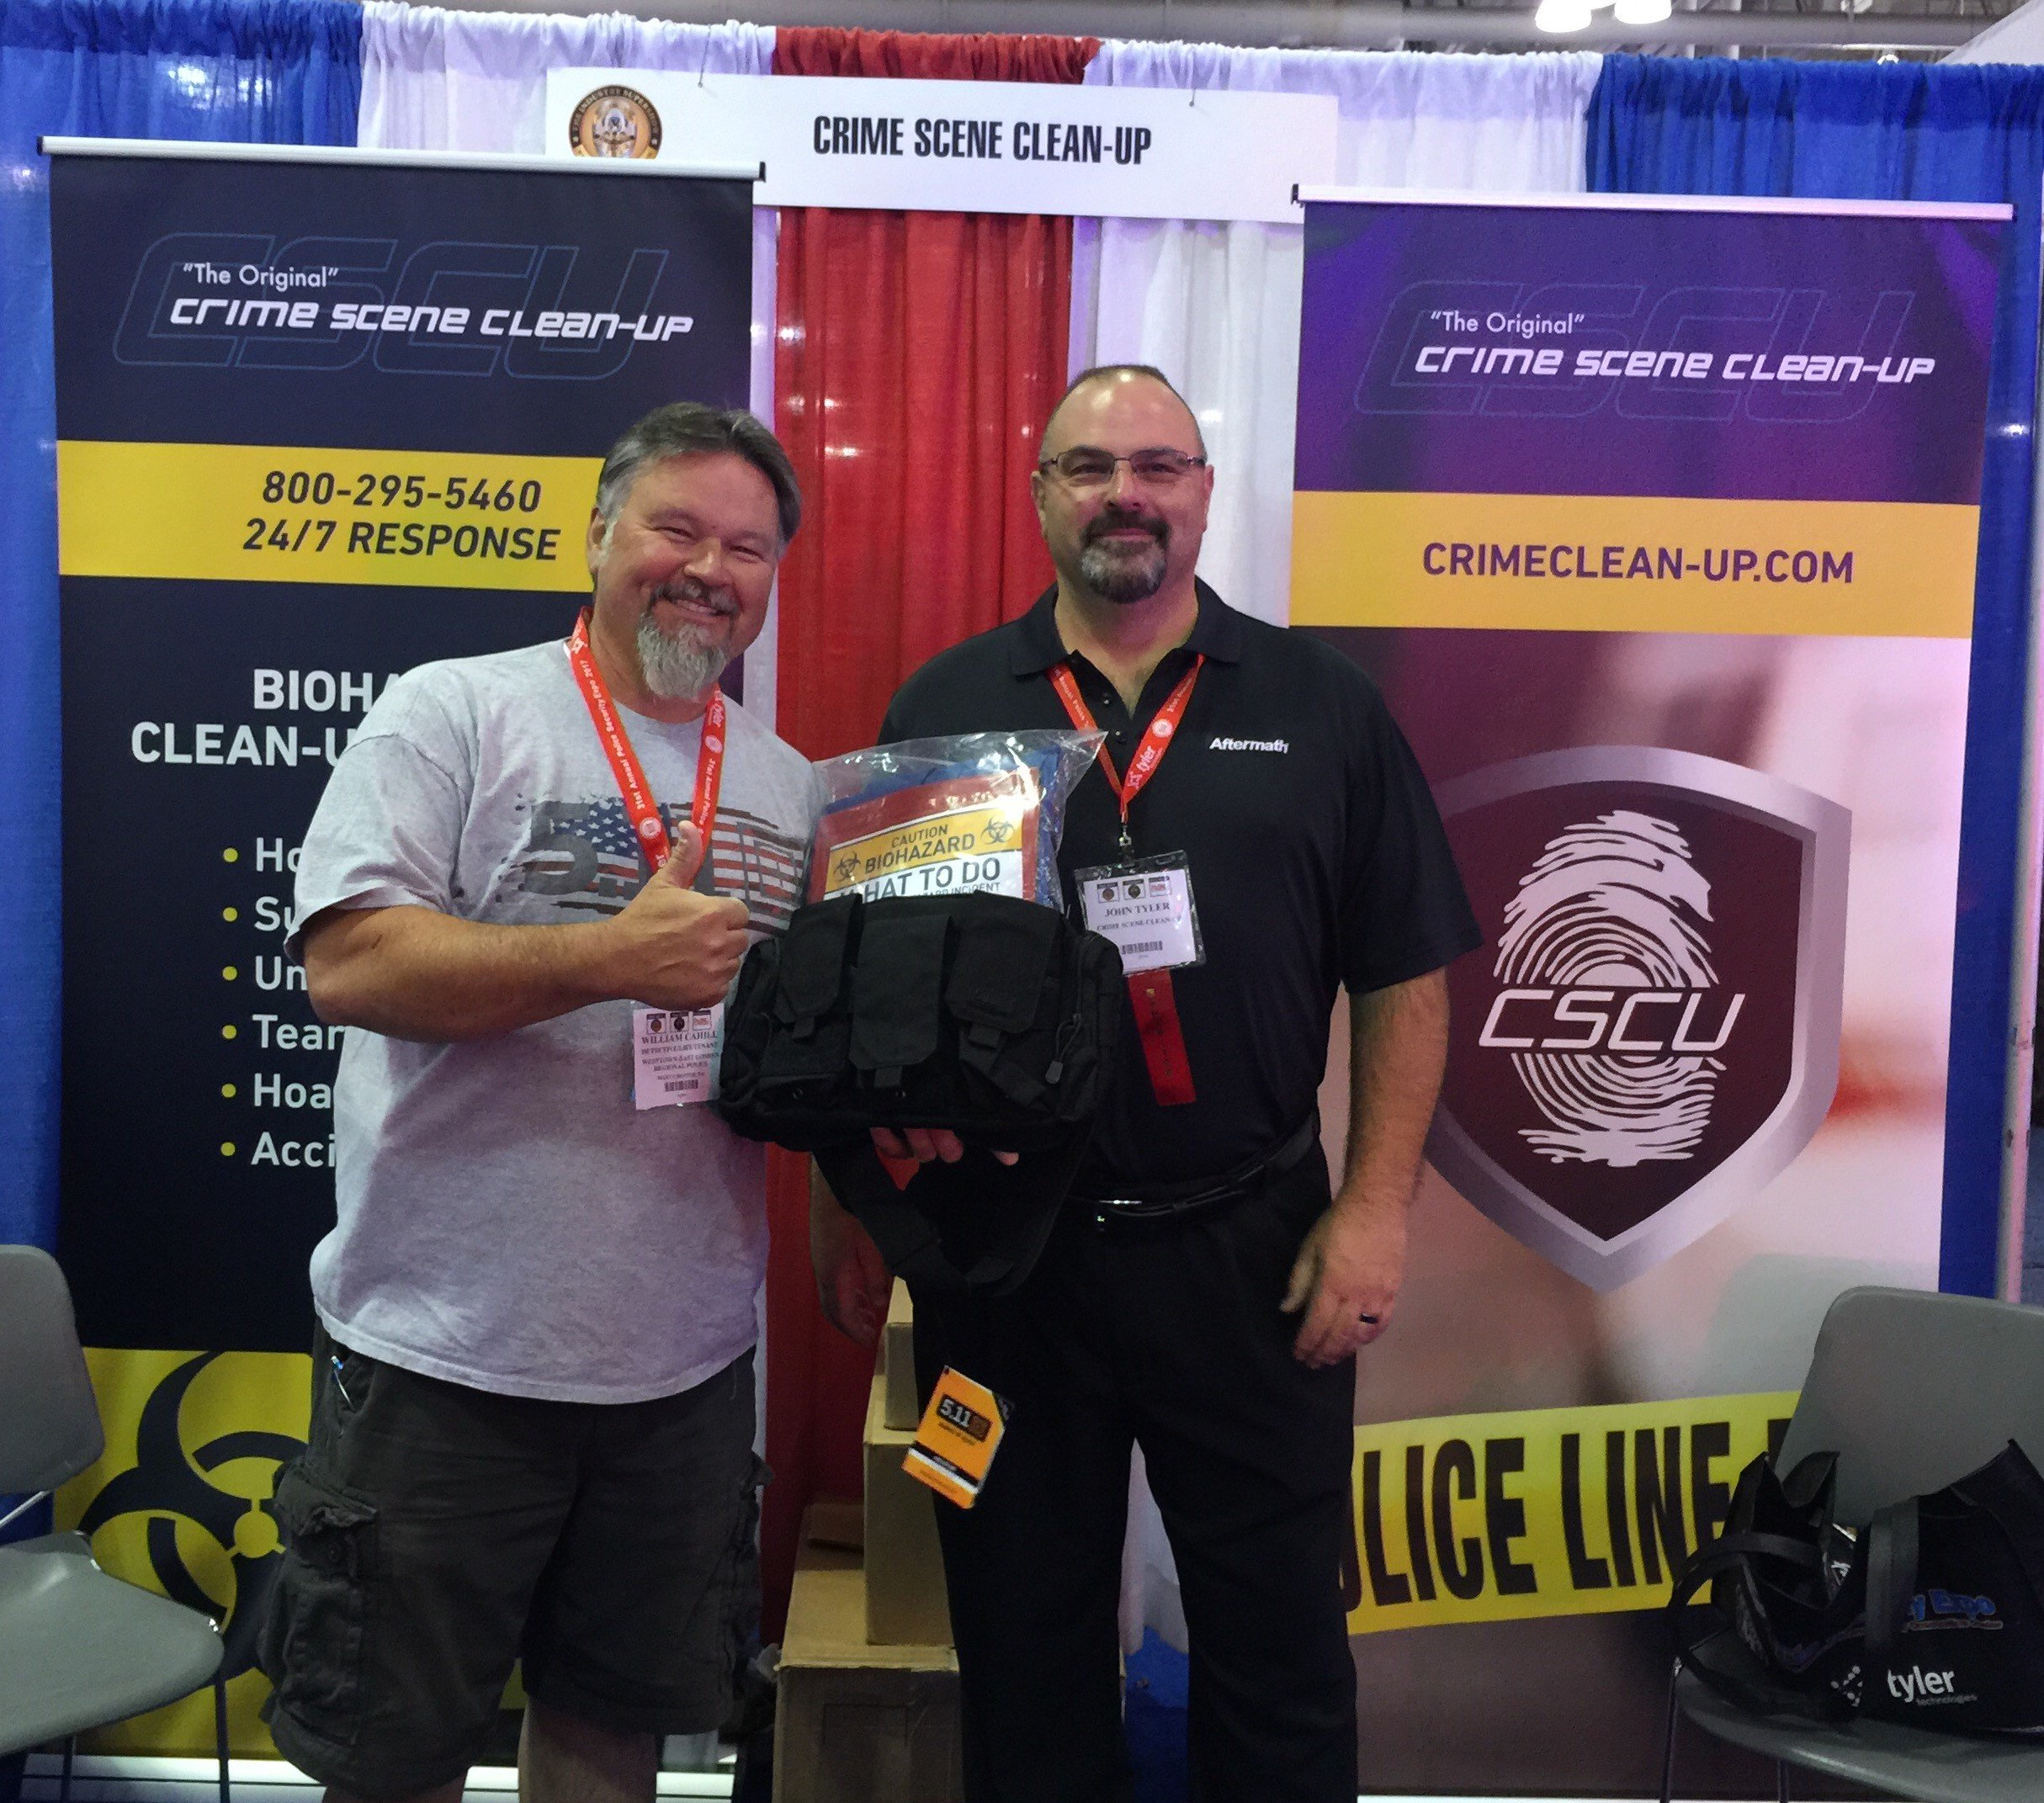 Police and Security Expo: Weston PD member poses with tactical bag.